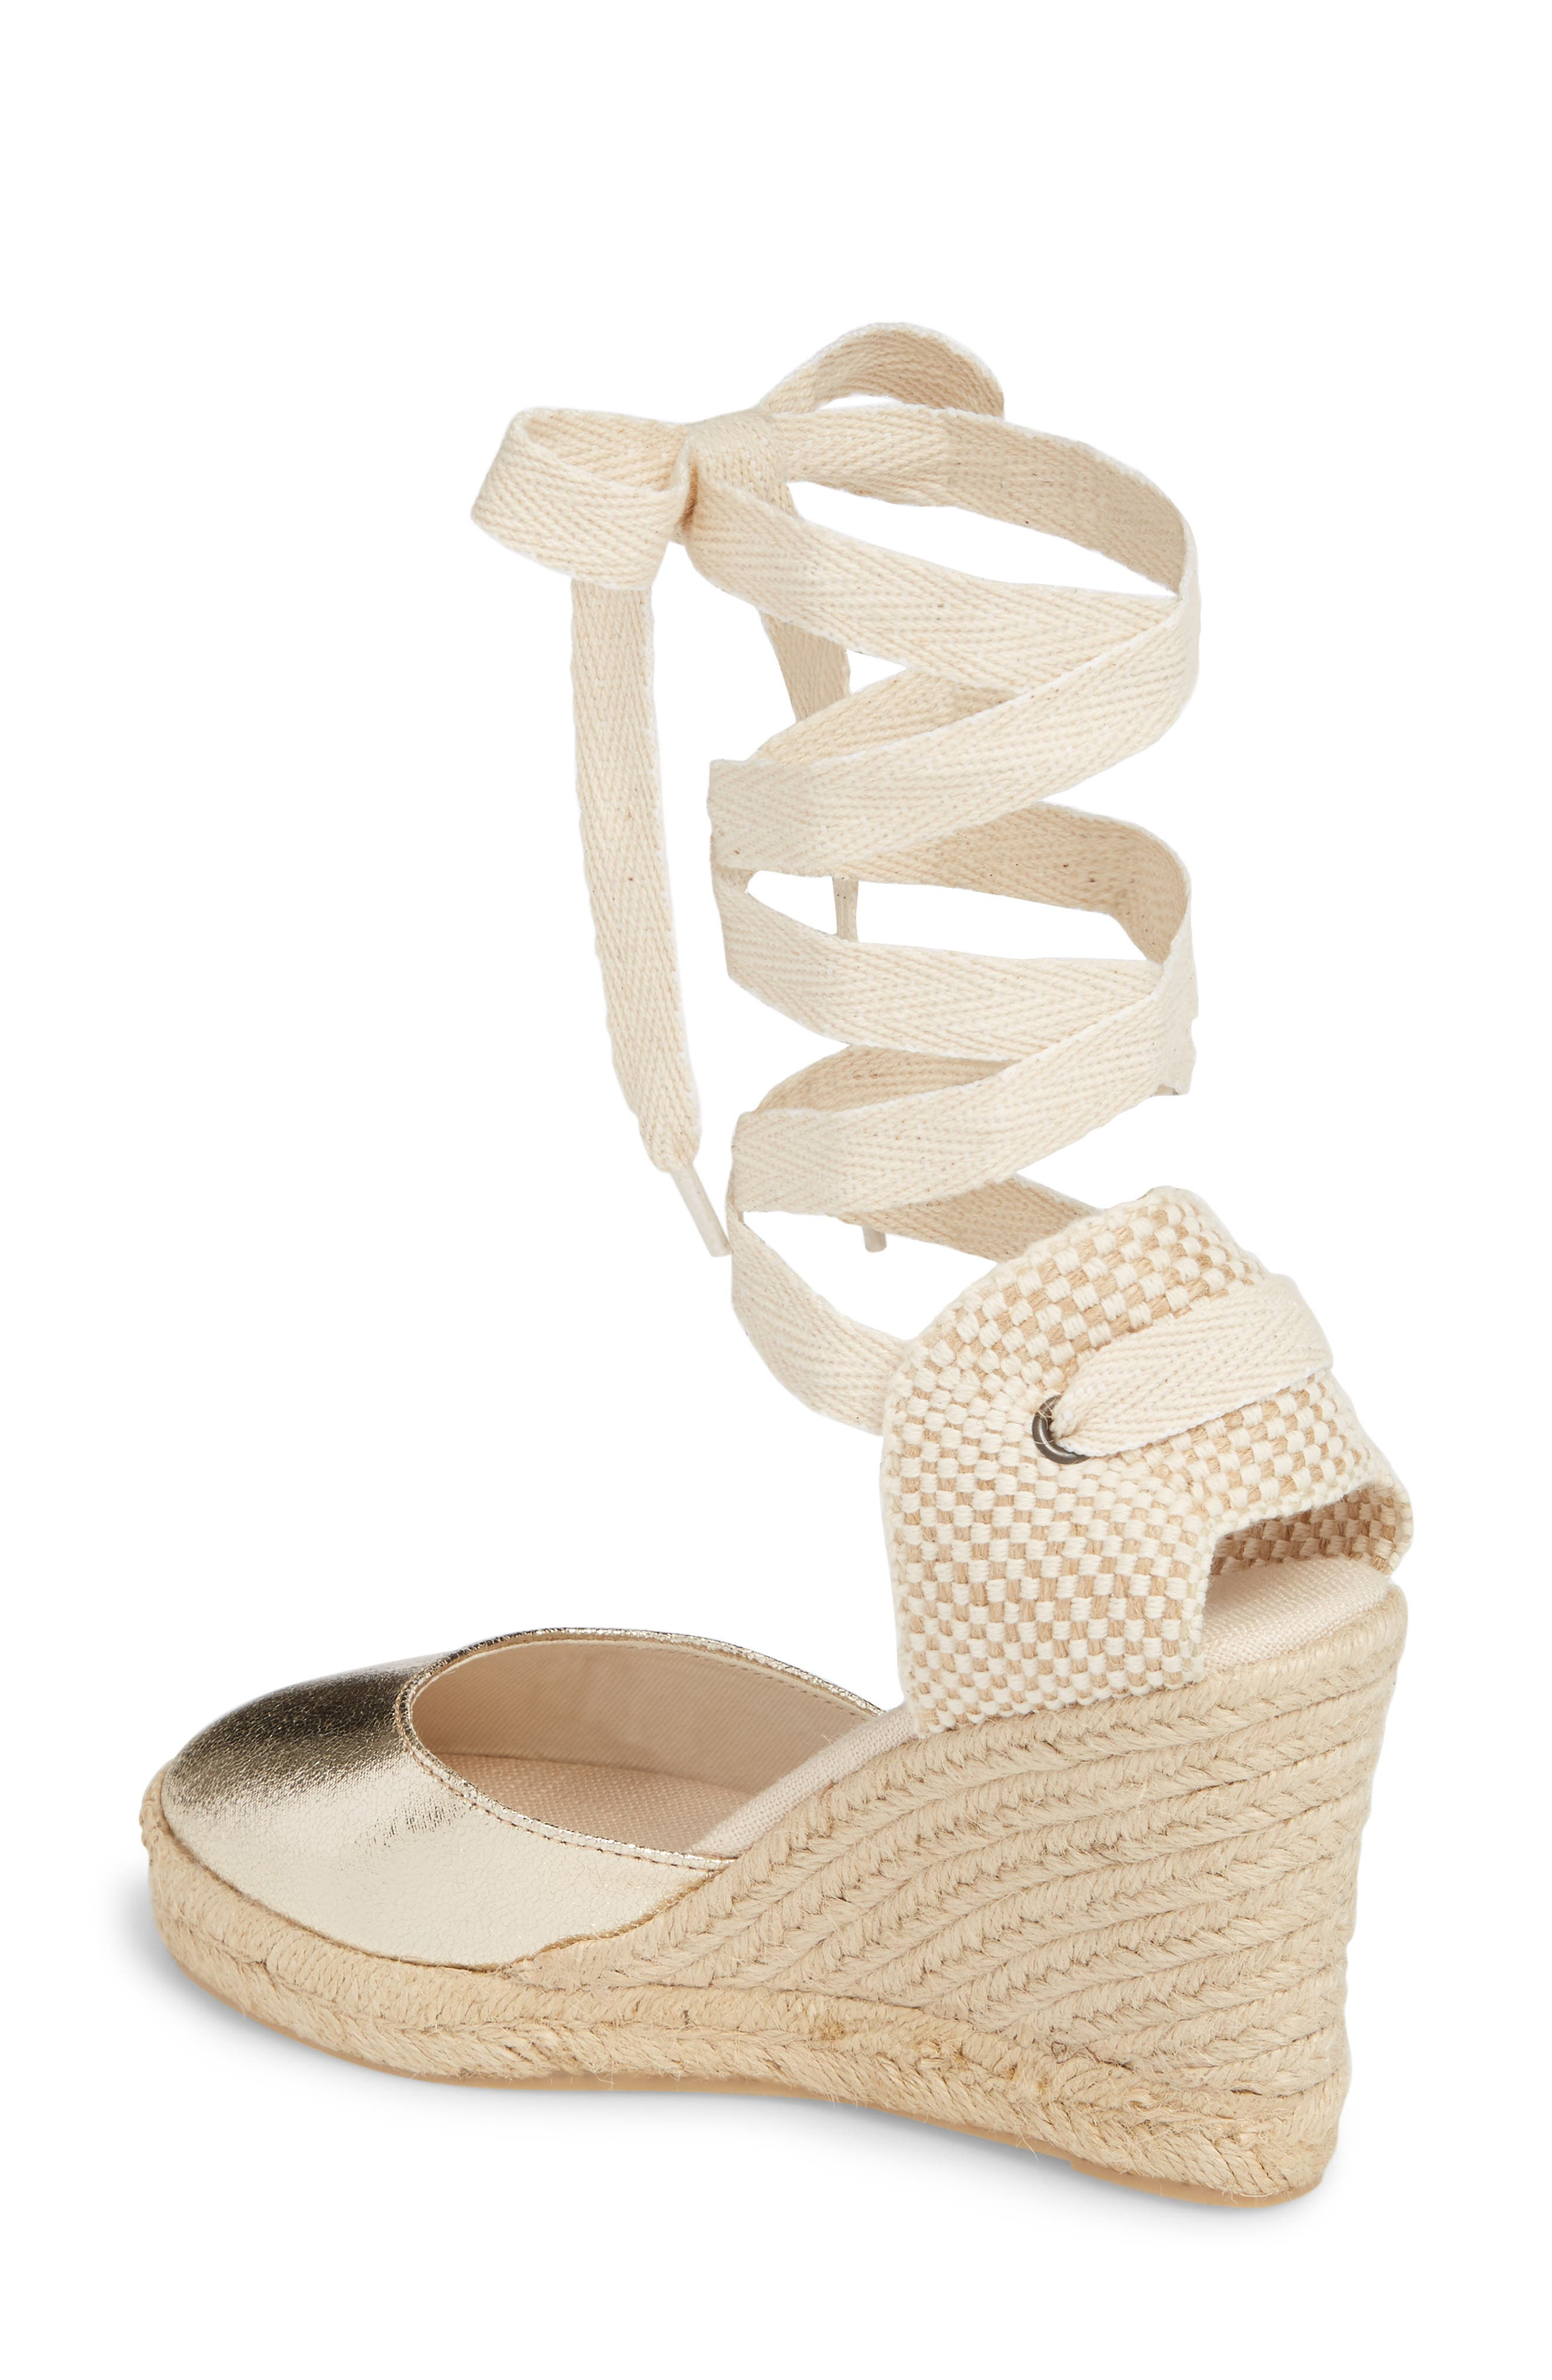 Wedge Lace-Up Espadrille Sandal,                             Alternate thumbnail 2, color,                             711